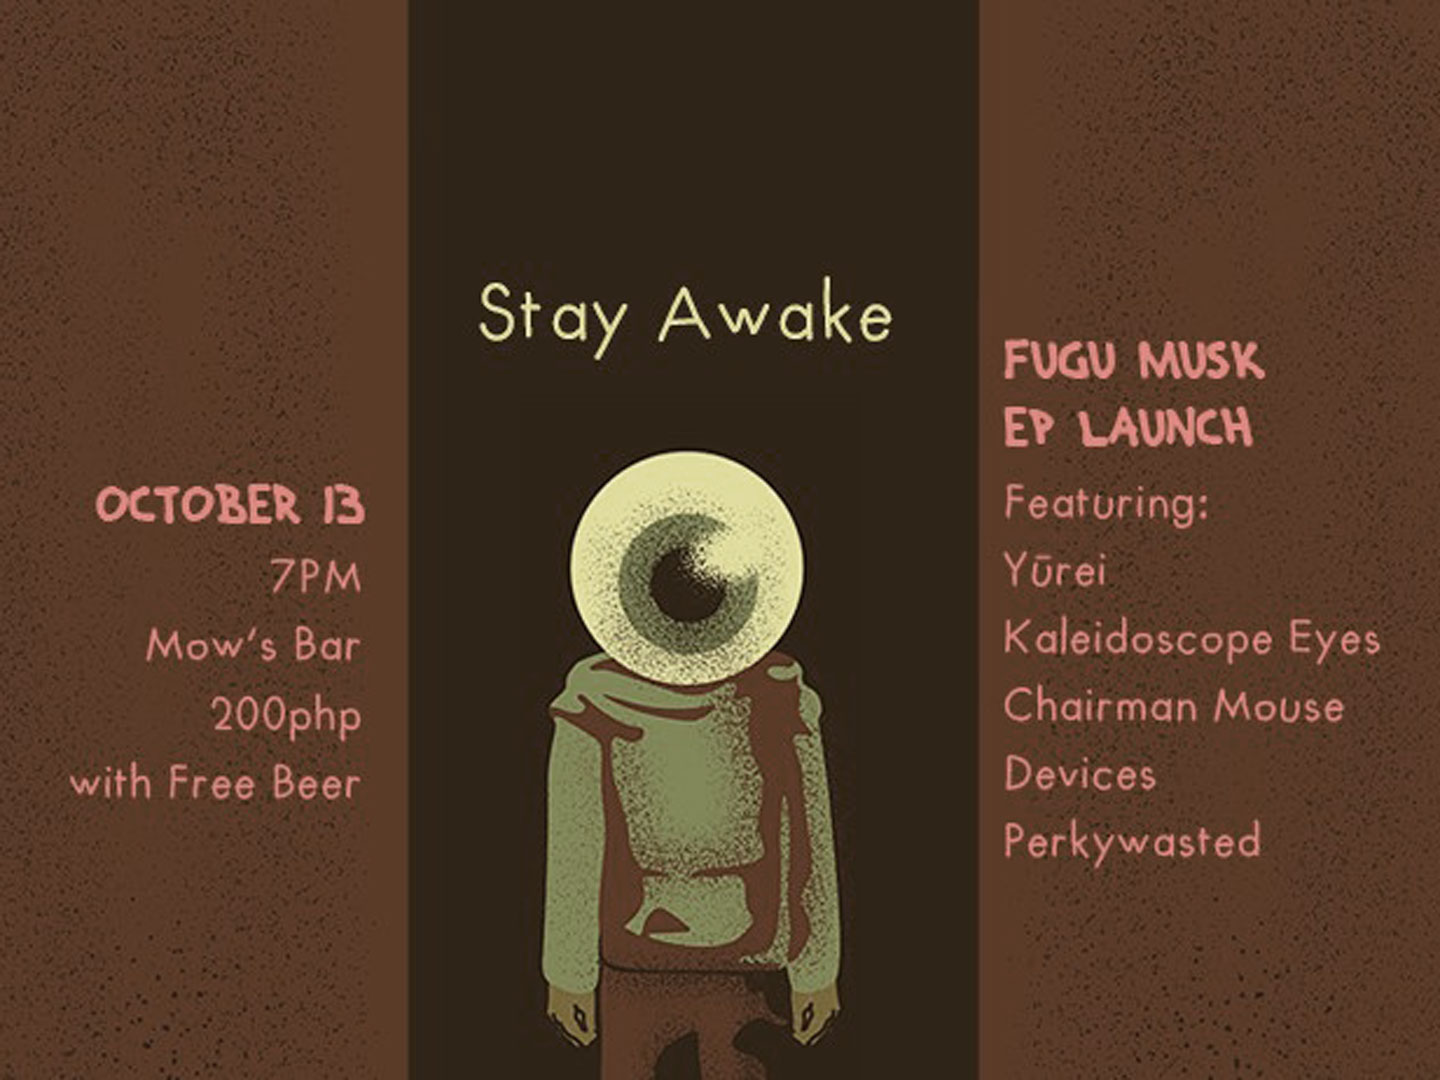 Poster for Fugu Musk's Stay Awake EP launch